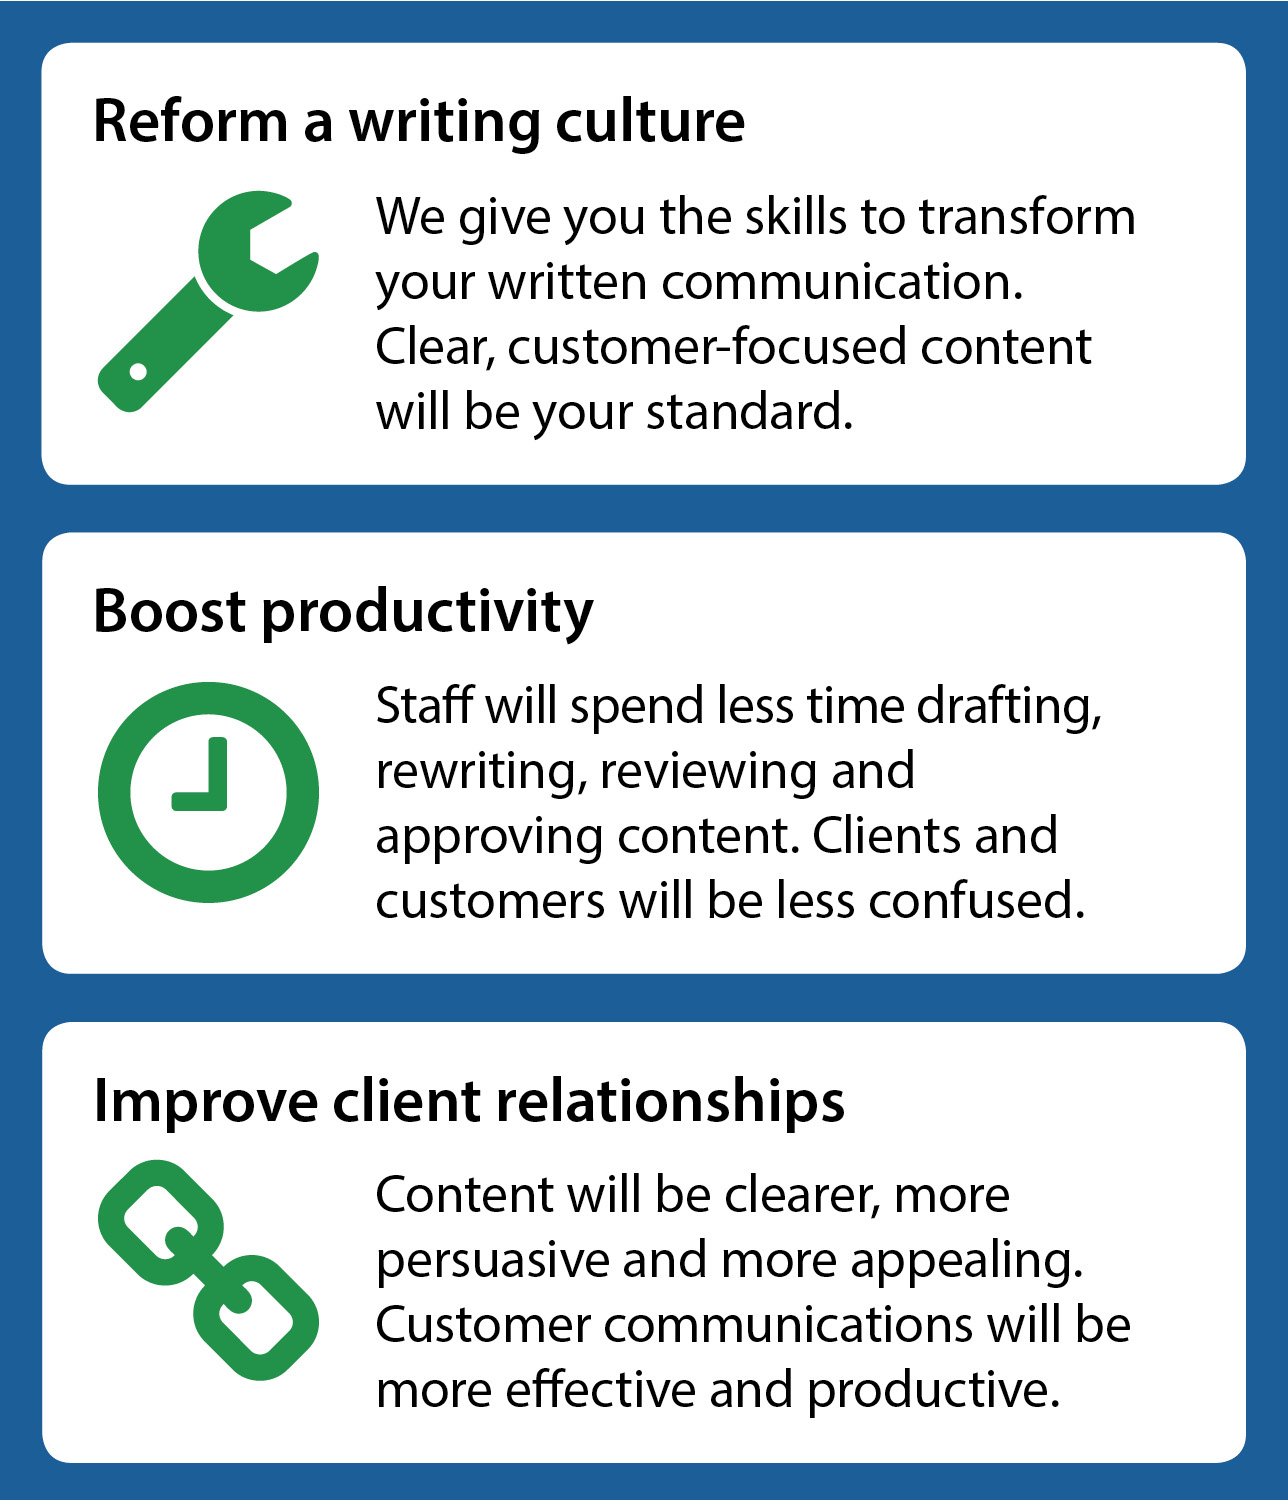 Our training can reform a writing culture, boost productivity and improve client relationships